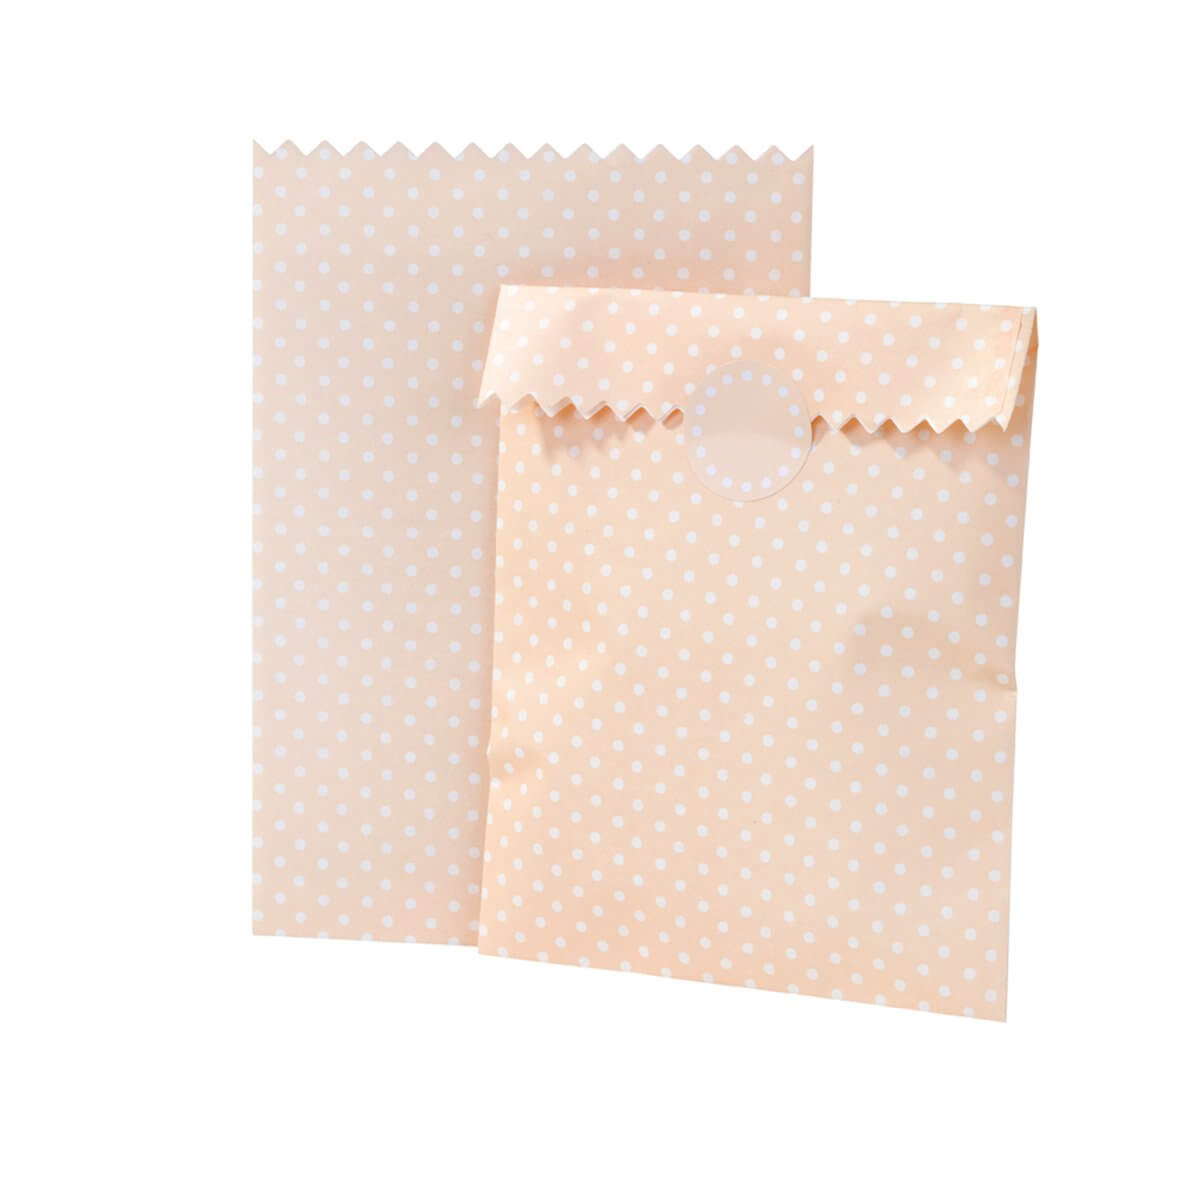 Mix and Match Treat Bags - Peach Spot